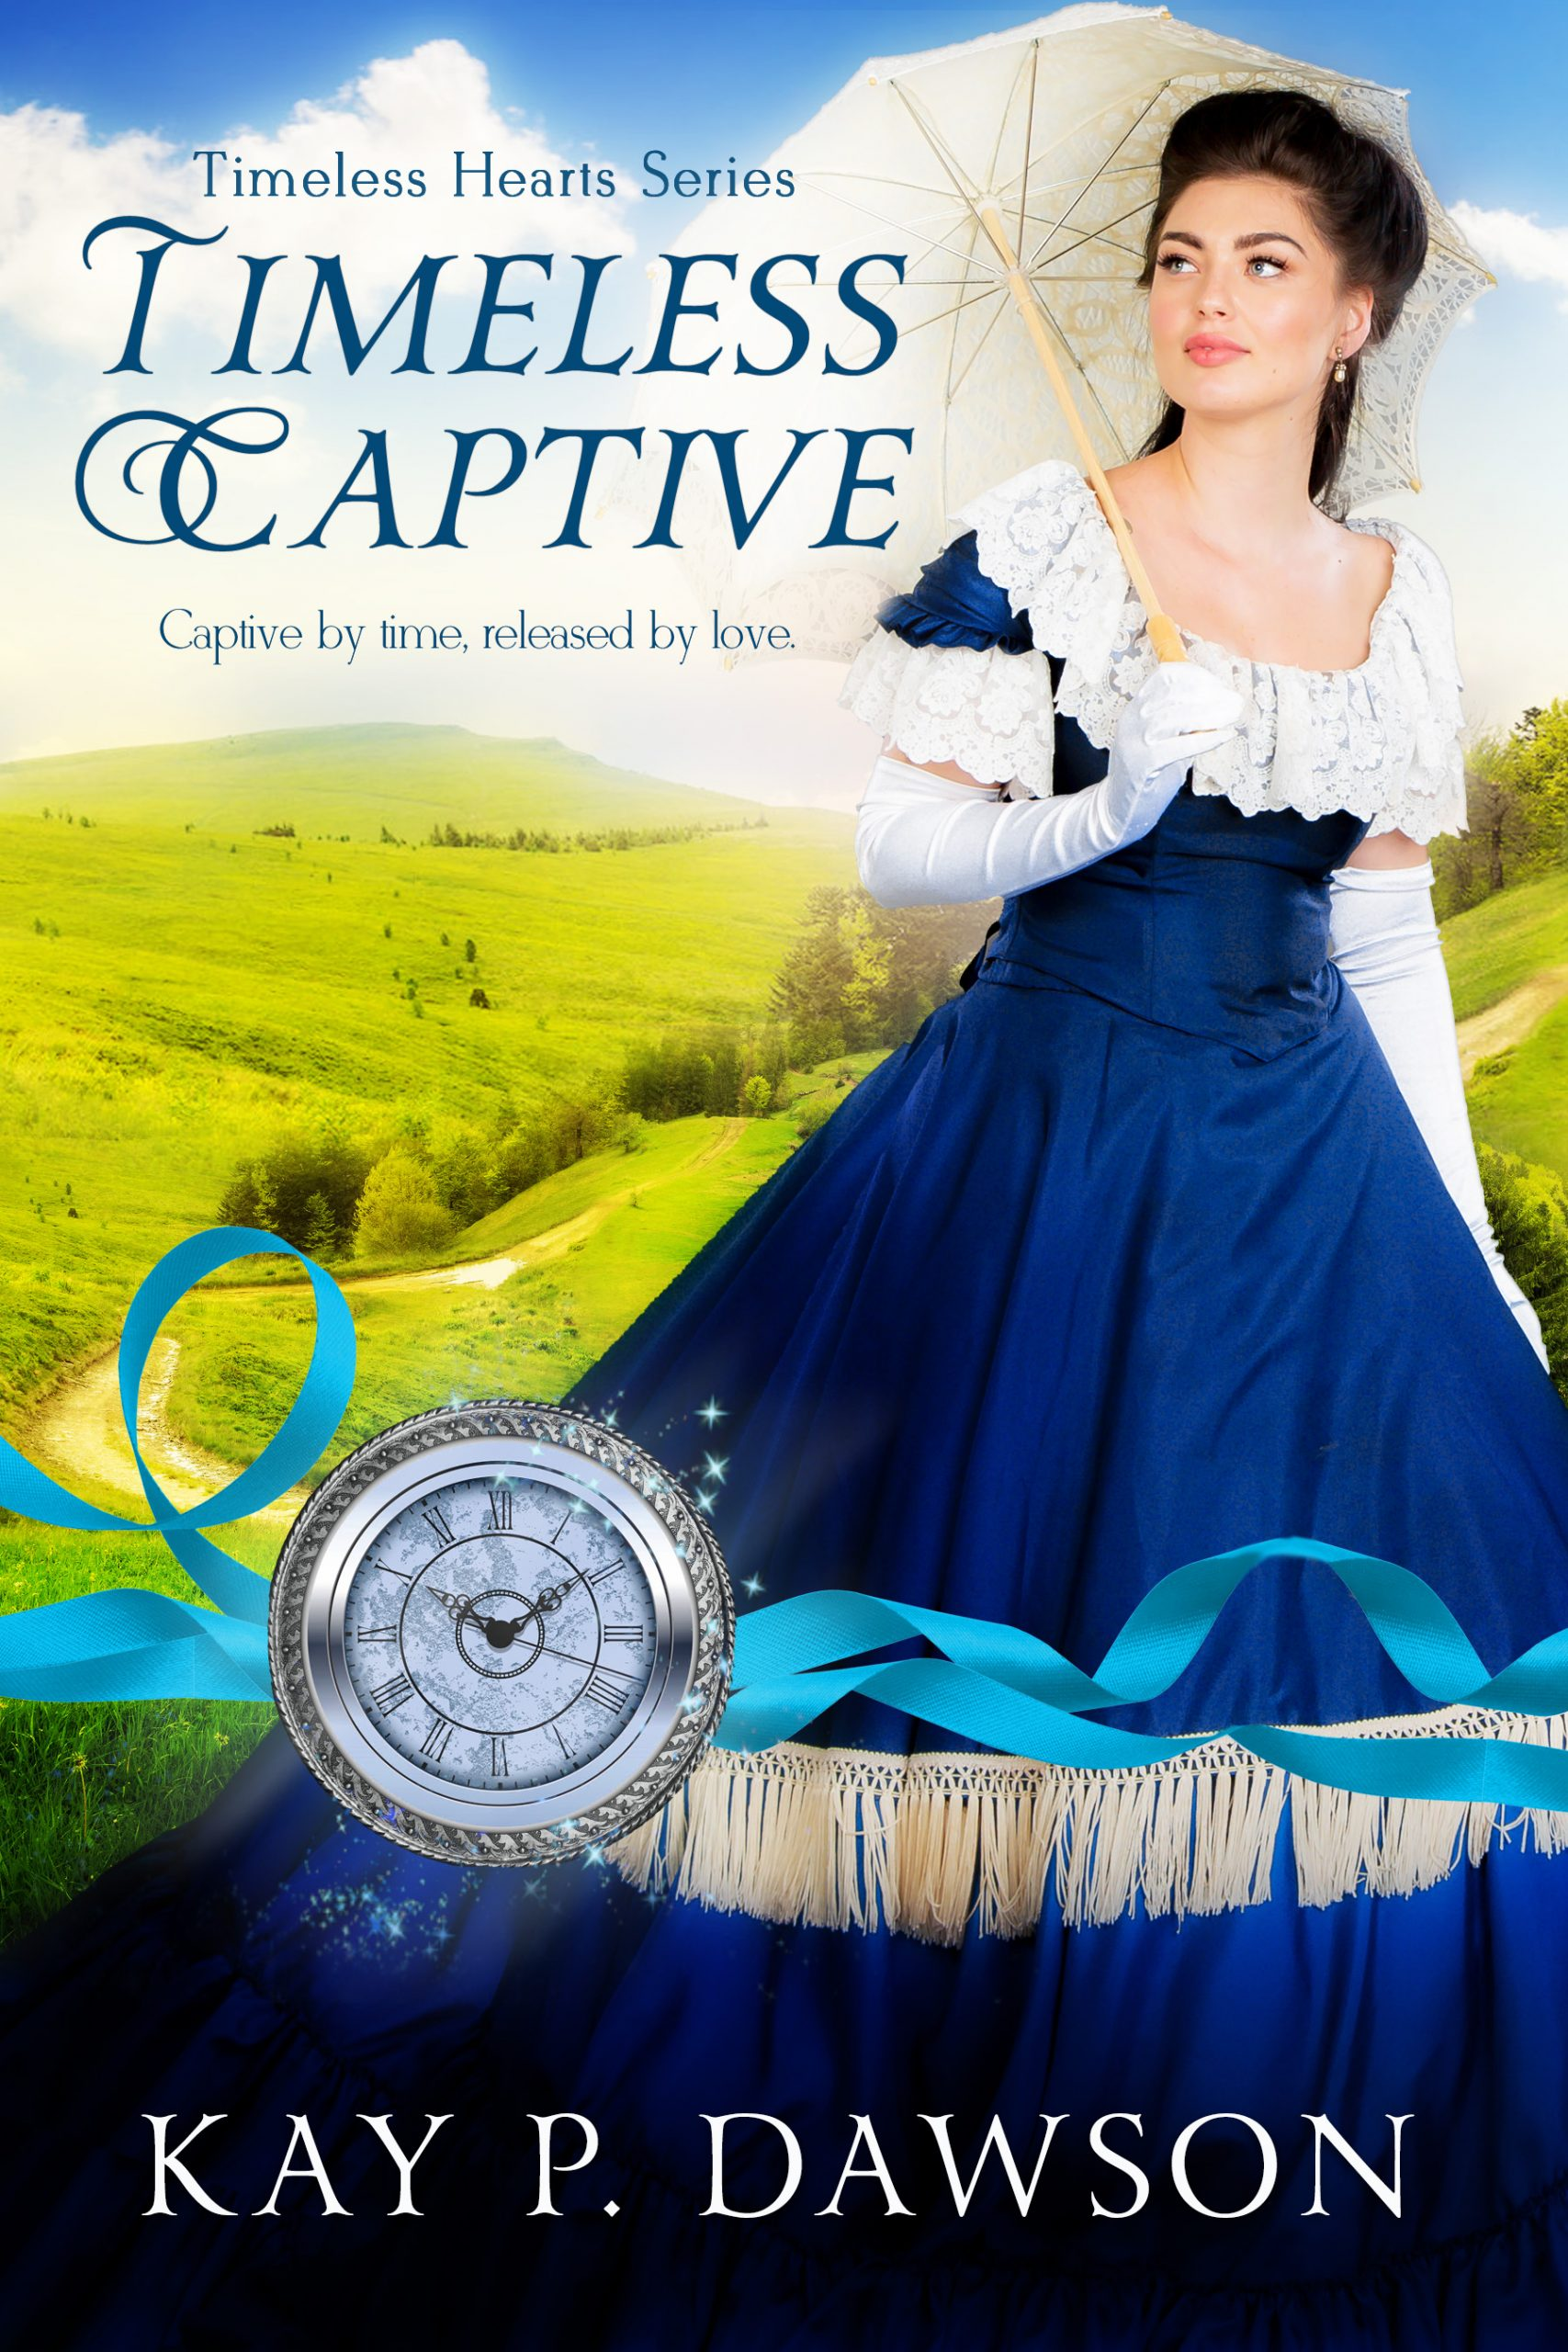 Timeless Captive - Timeless Hearts Series